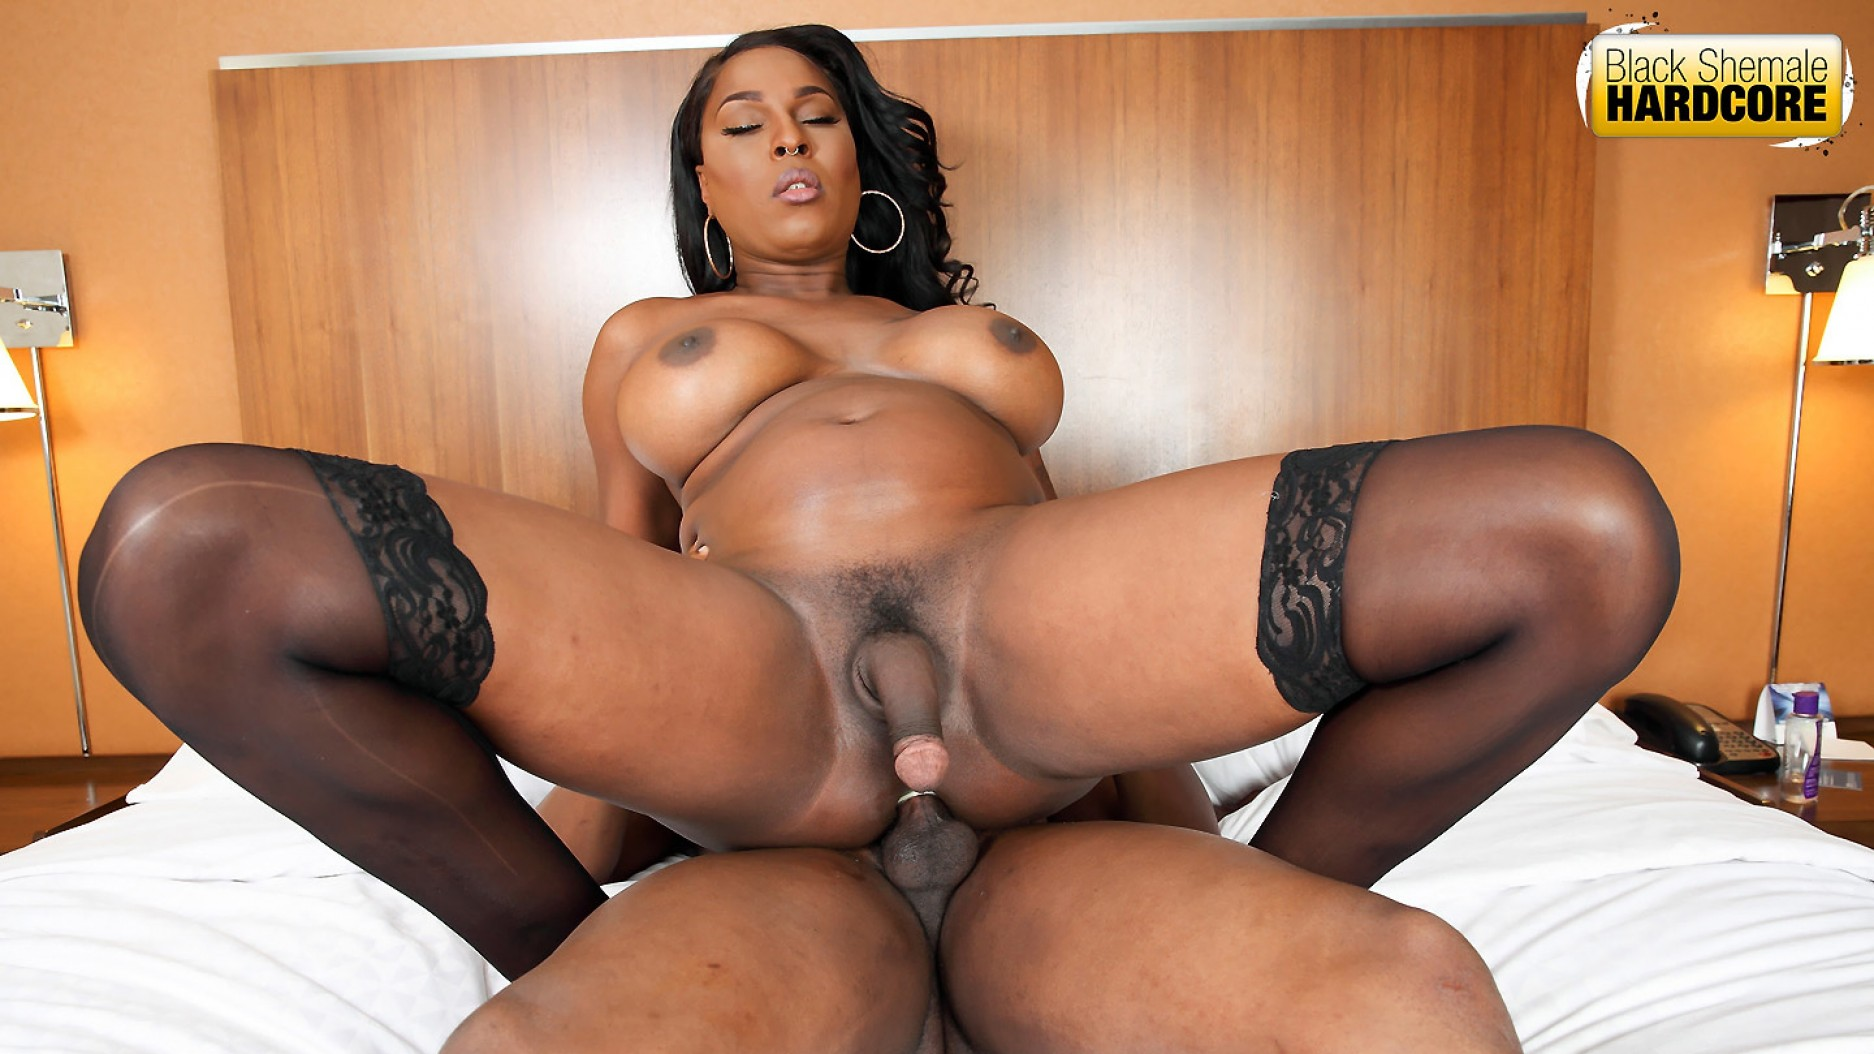 Black tranny porn black shemale sex shemale tube-22018